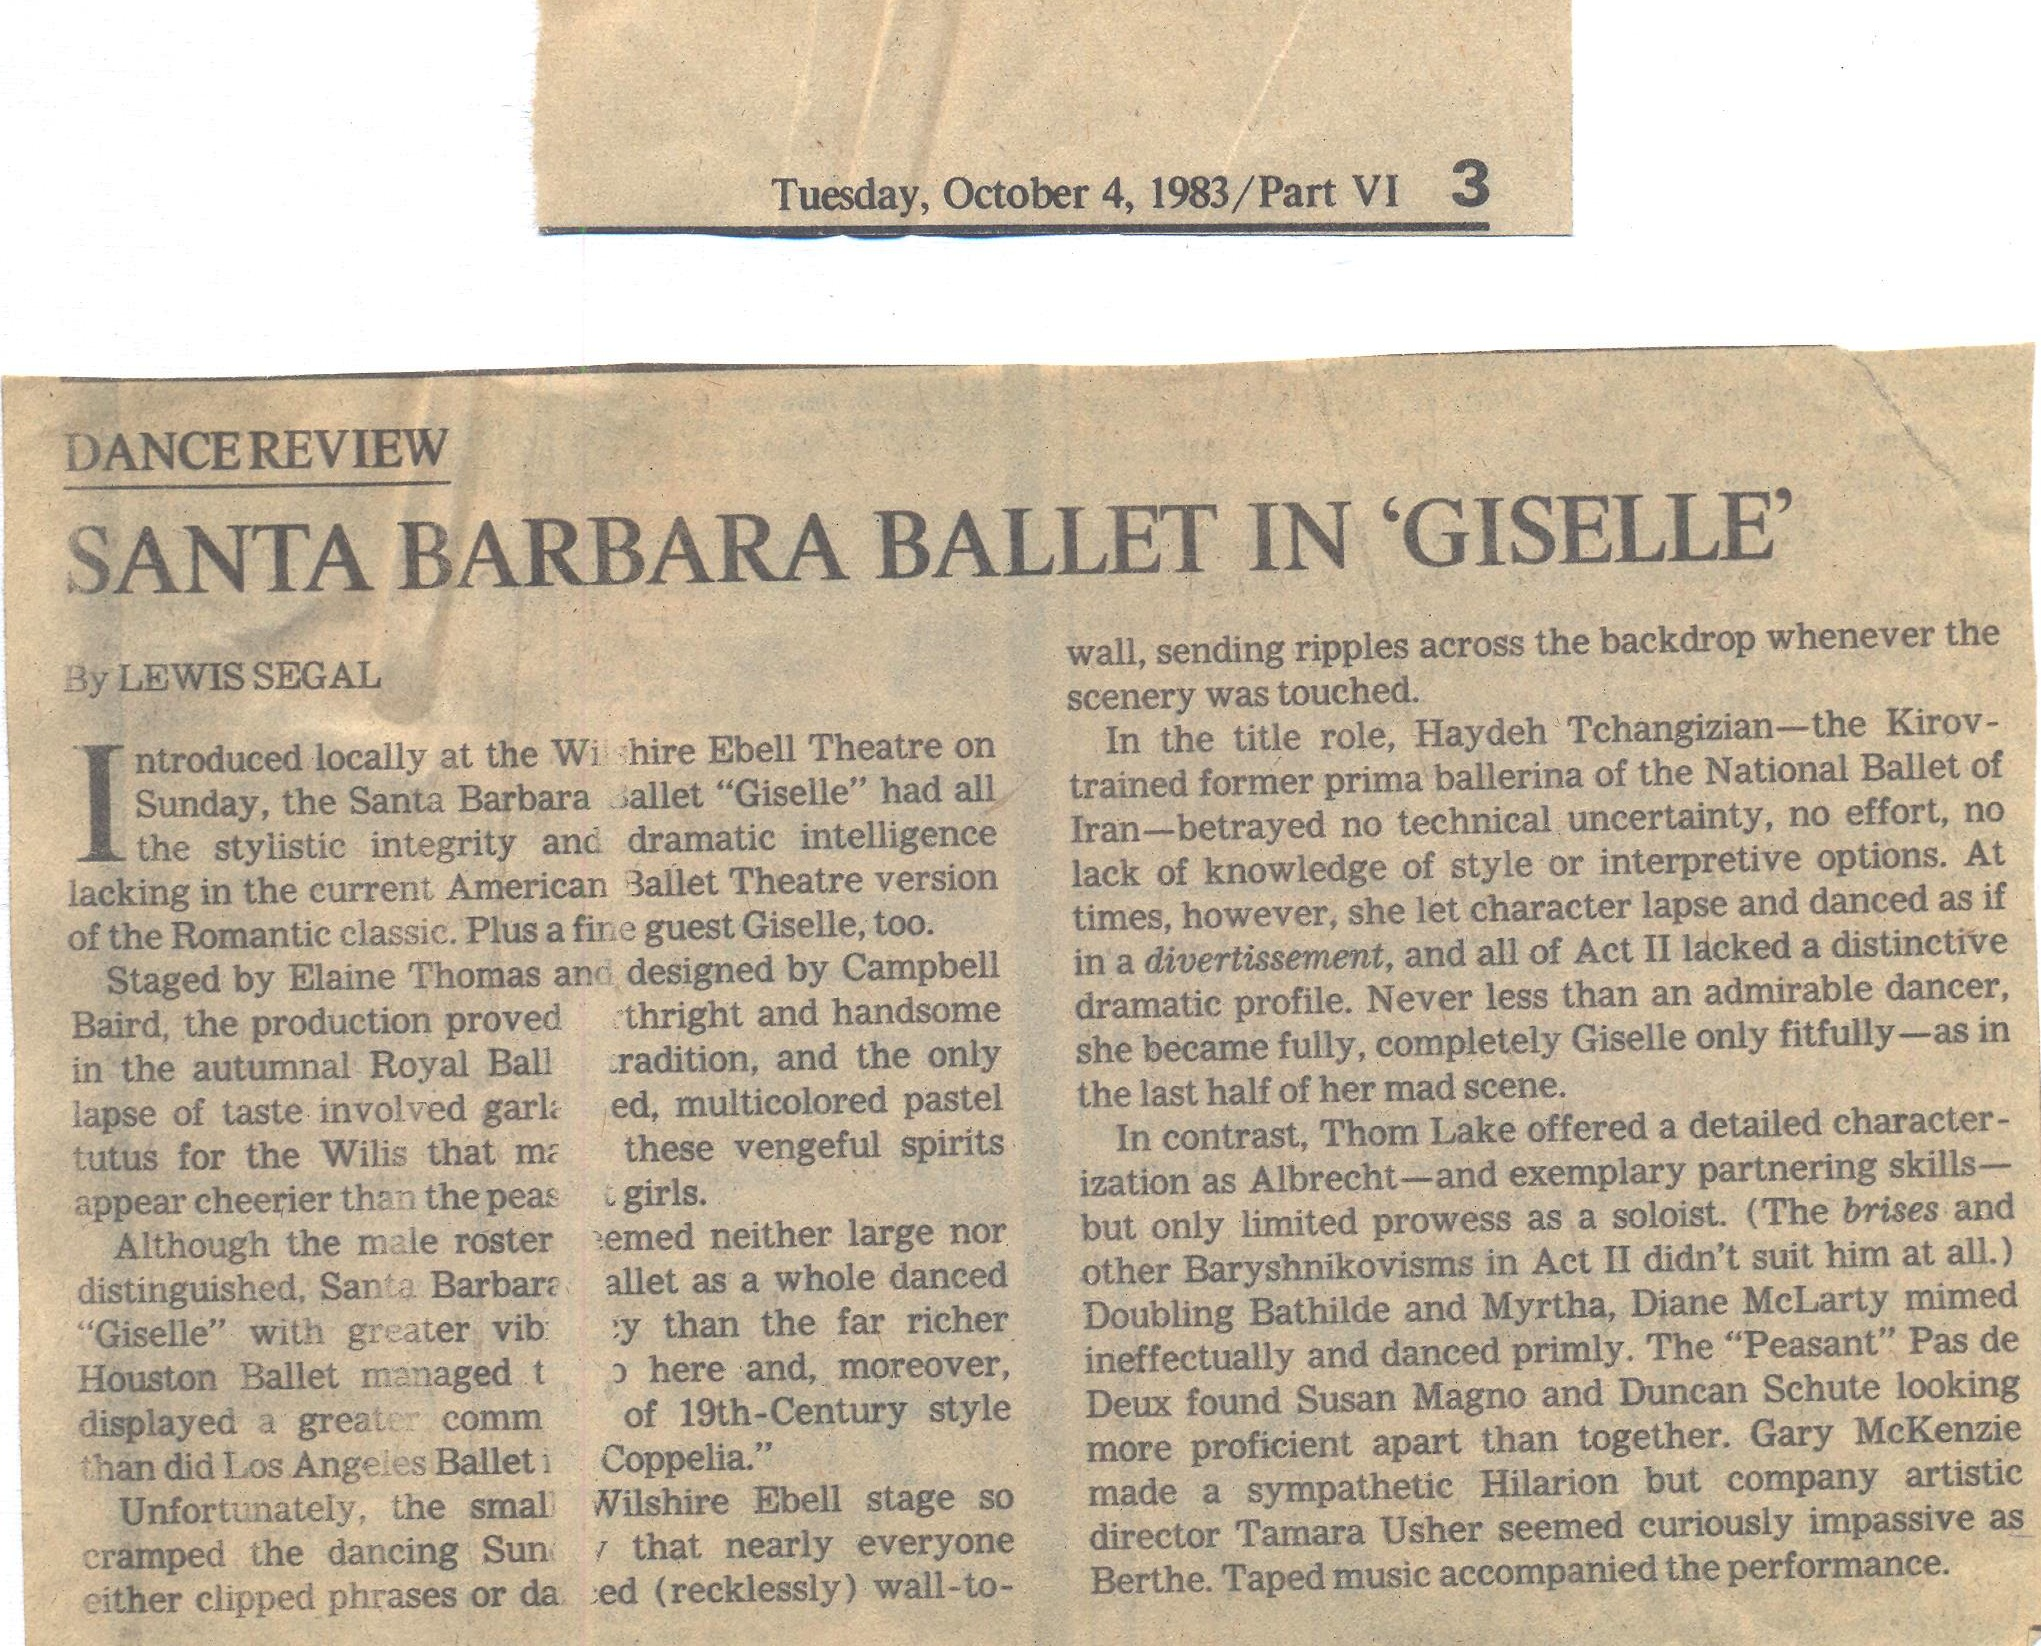 Dance Review by Lewis Segal, 1983